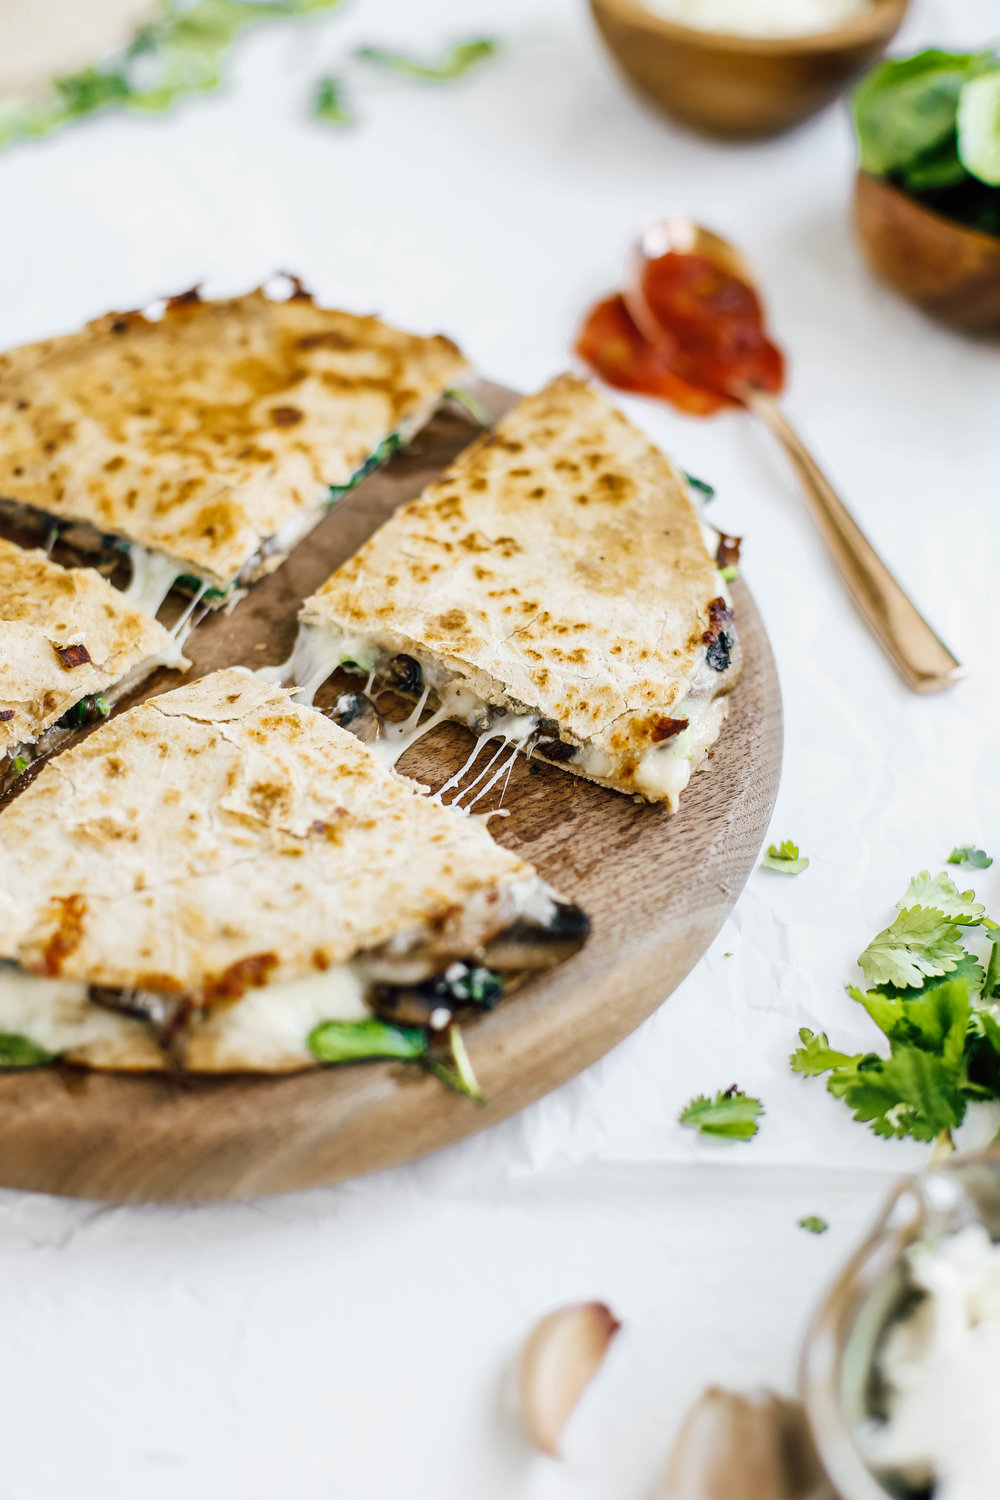 Caramelized Spinach & Mushroom Goat Cheese Quesadillas-3.jpg